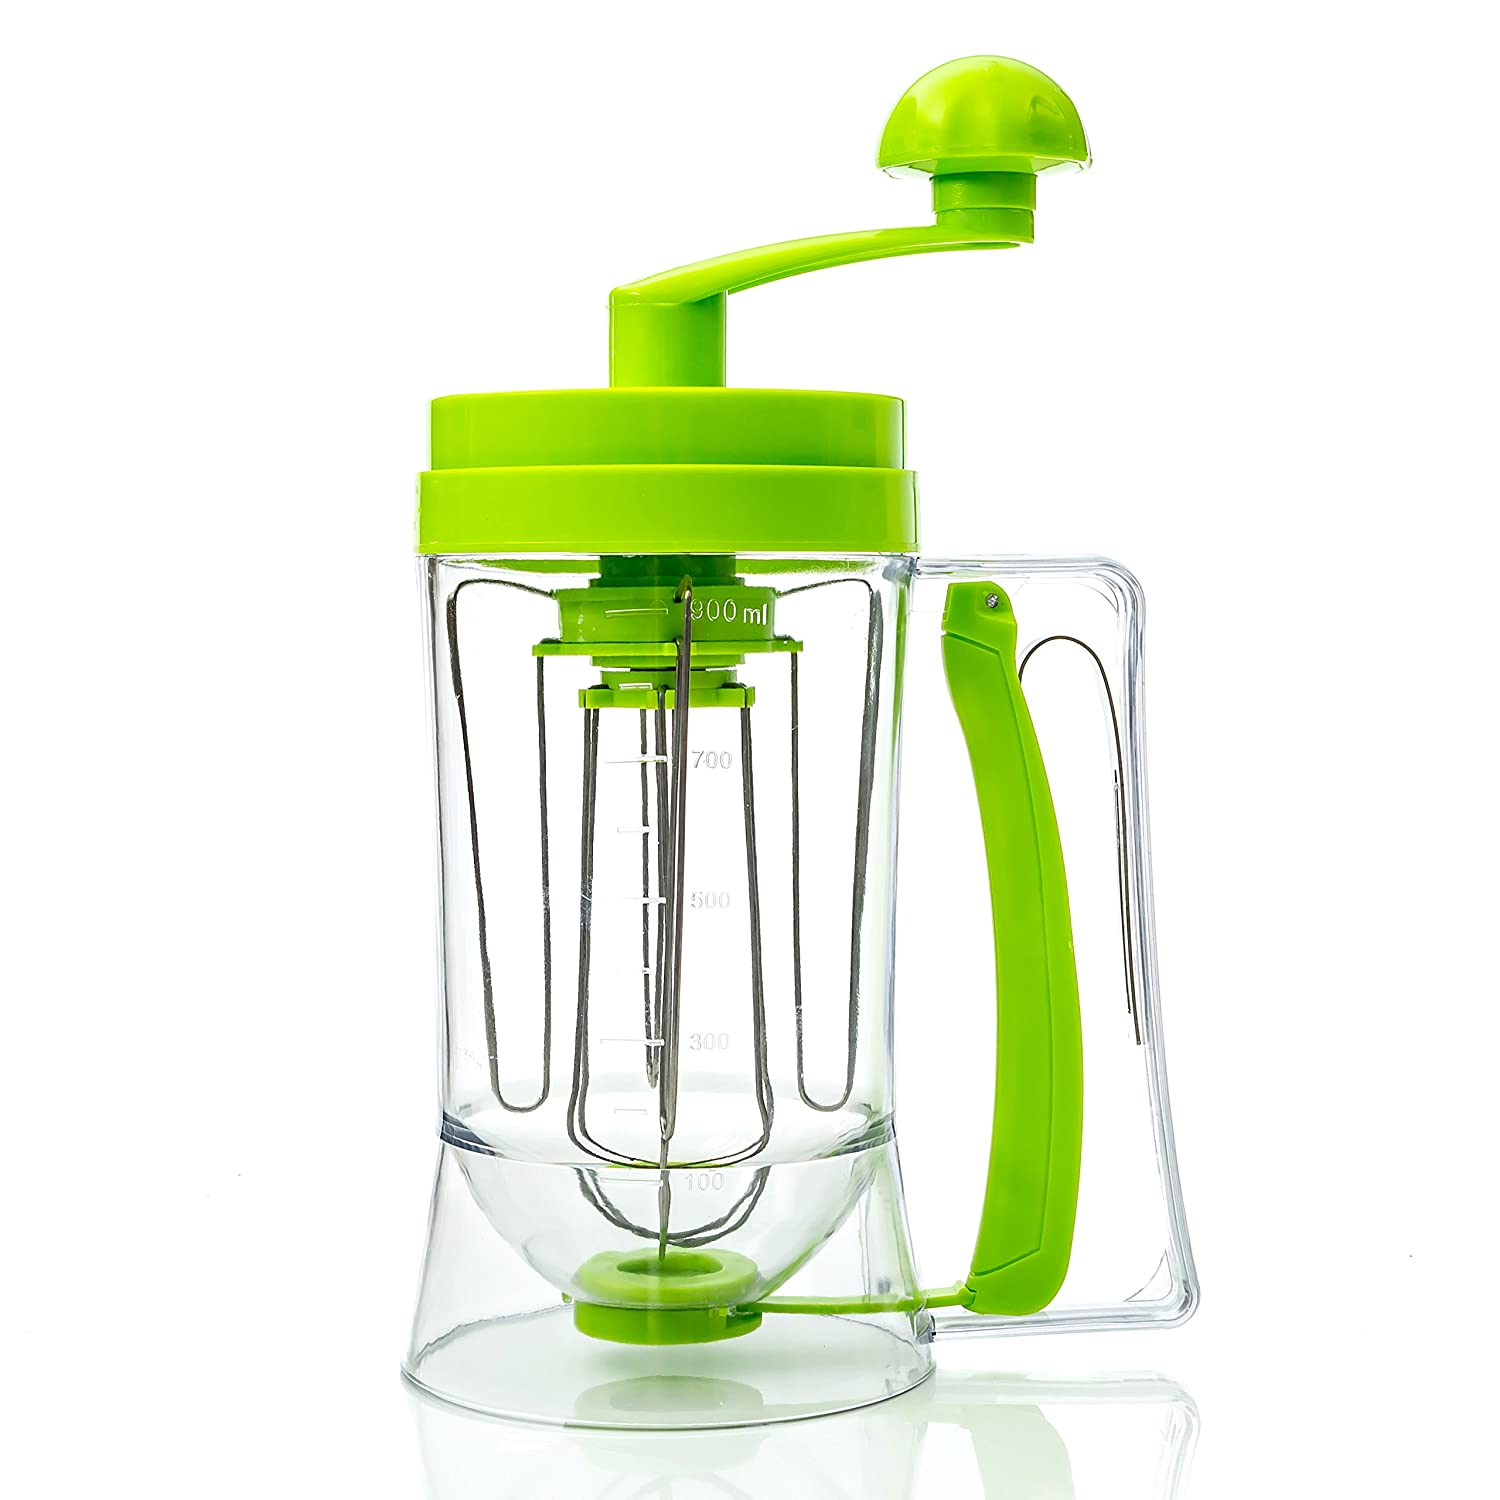 Lime Green Kitchen Appliances Amazoncom Cooking Upgrades Cake Batter Dispenser And Mixing